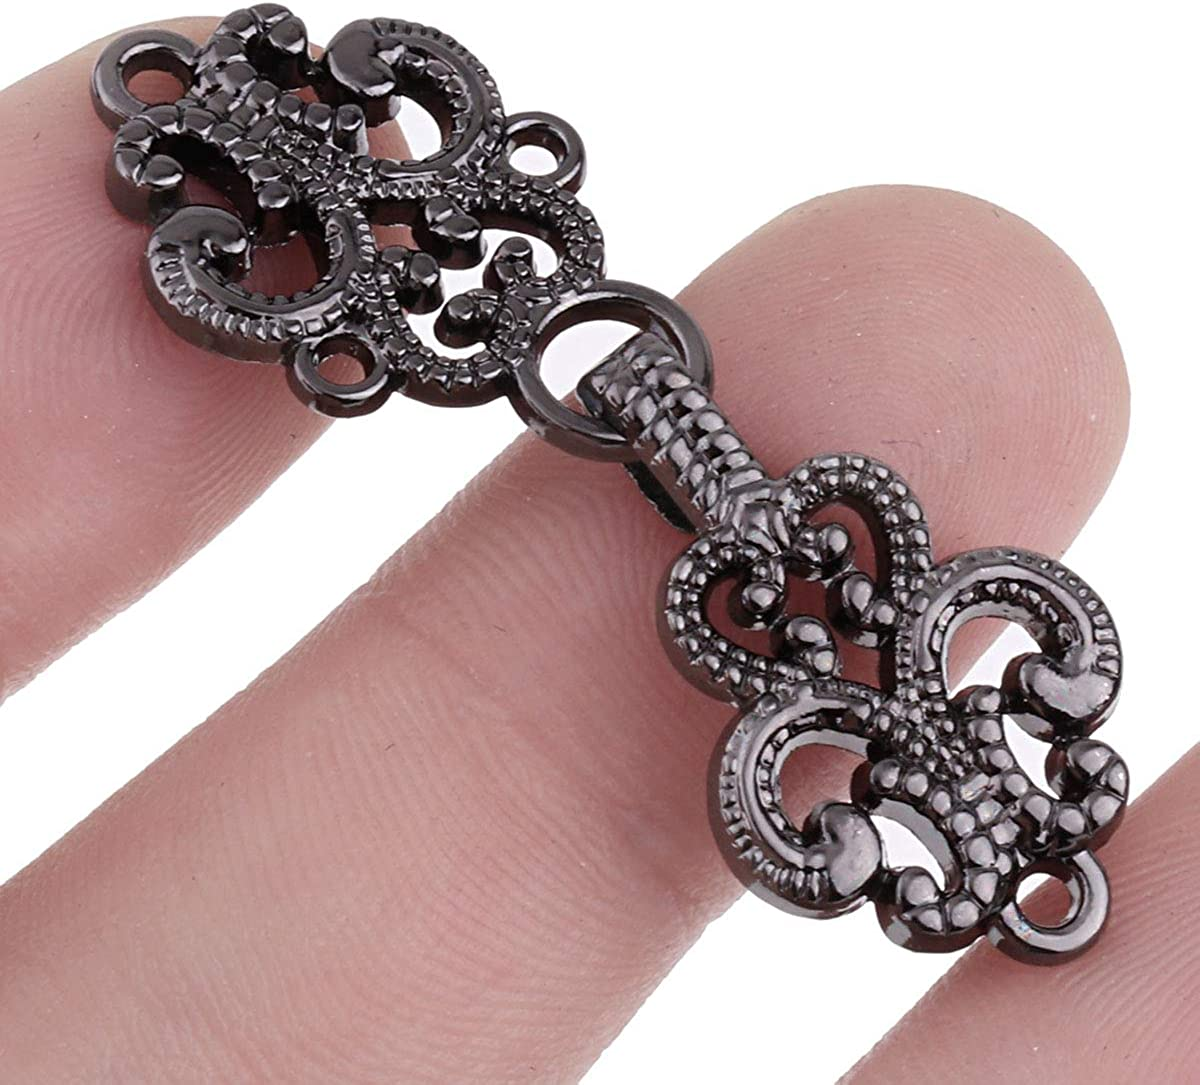 IEFIEL 5 Pairs Retro Flower Filigree Trivet Clasp Fasteners Clip for Cape Cloak Cardigan